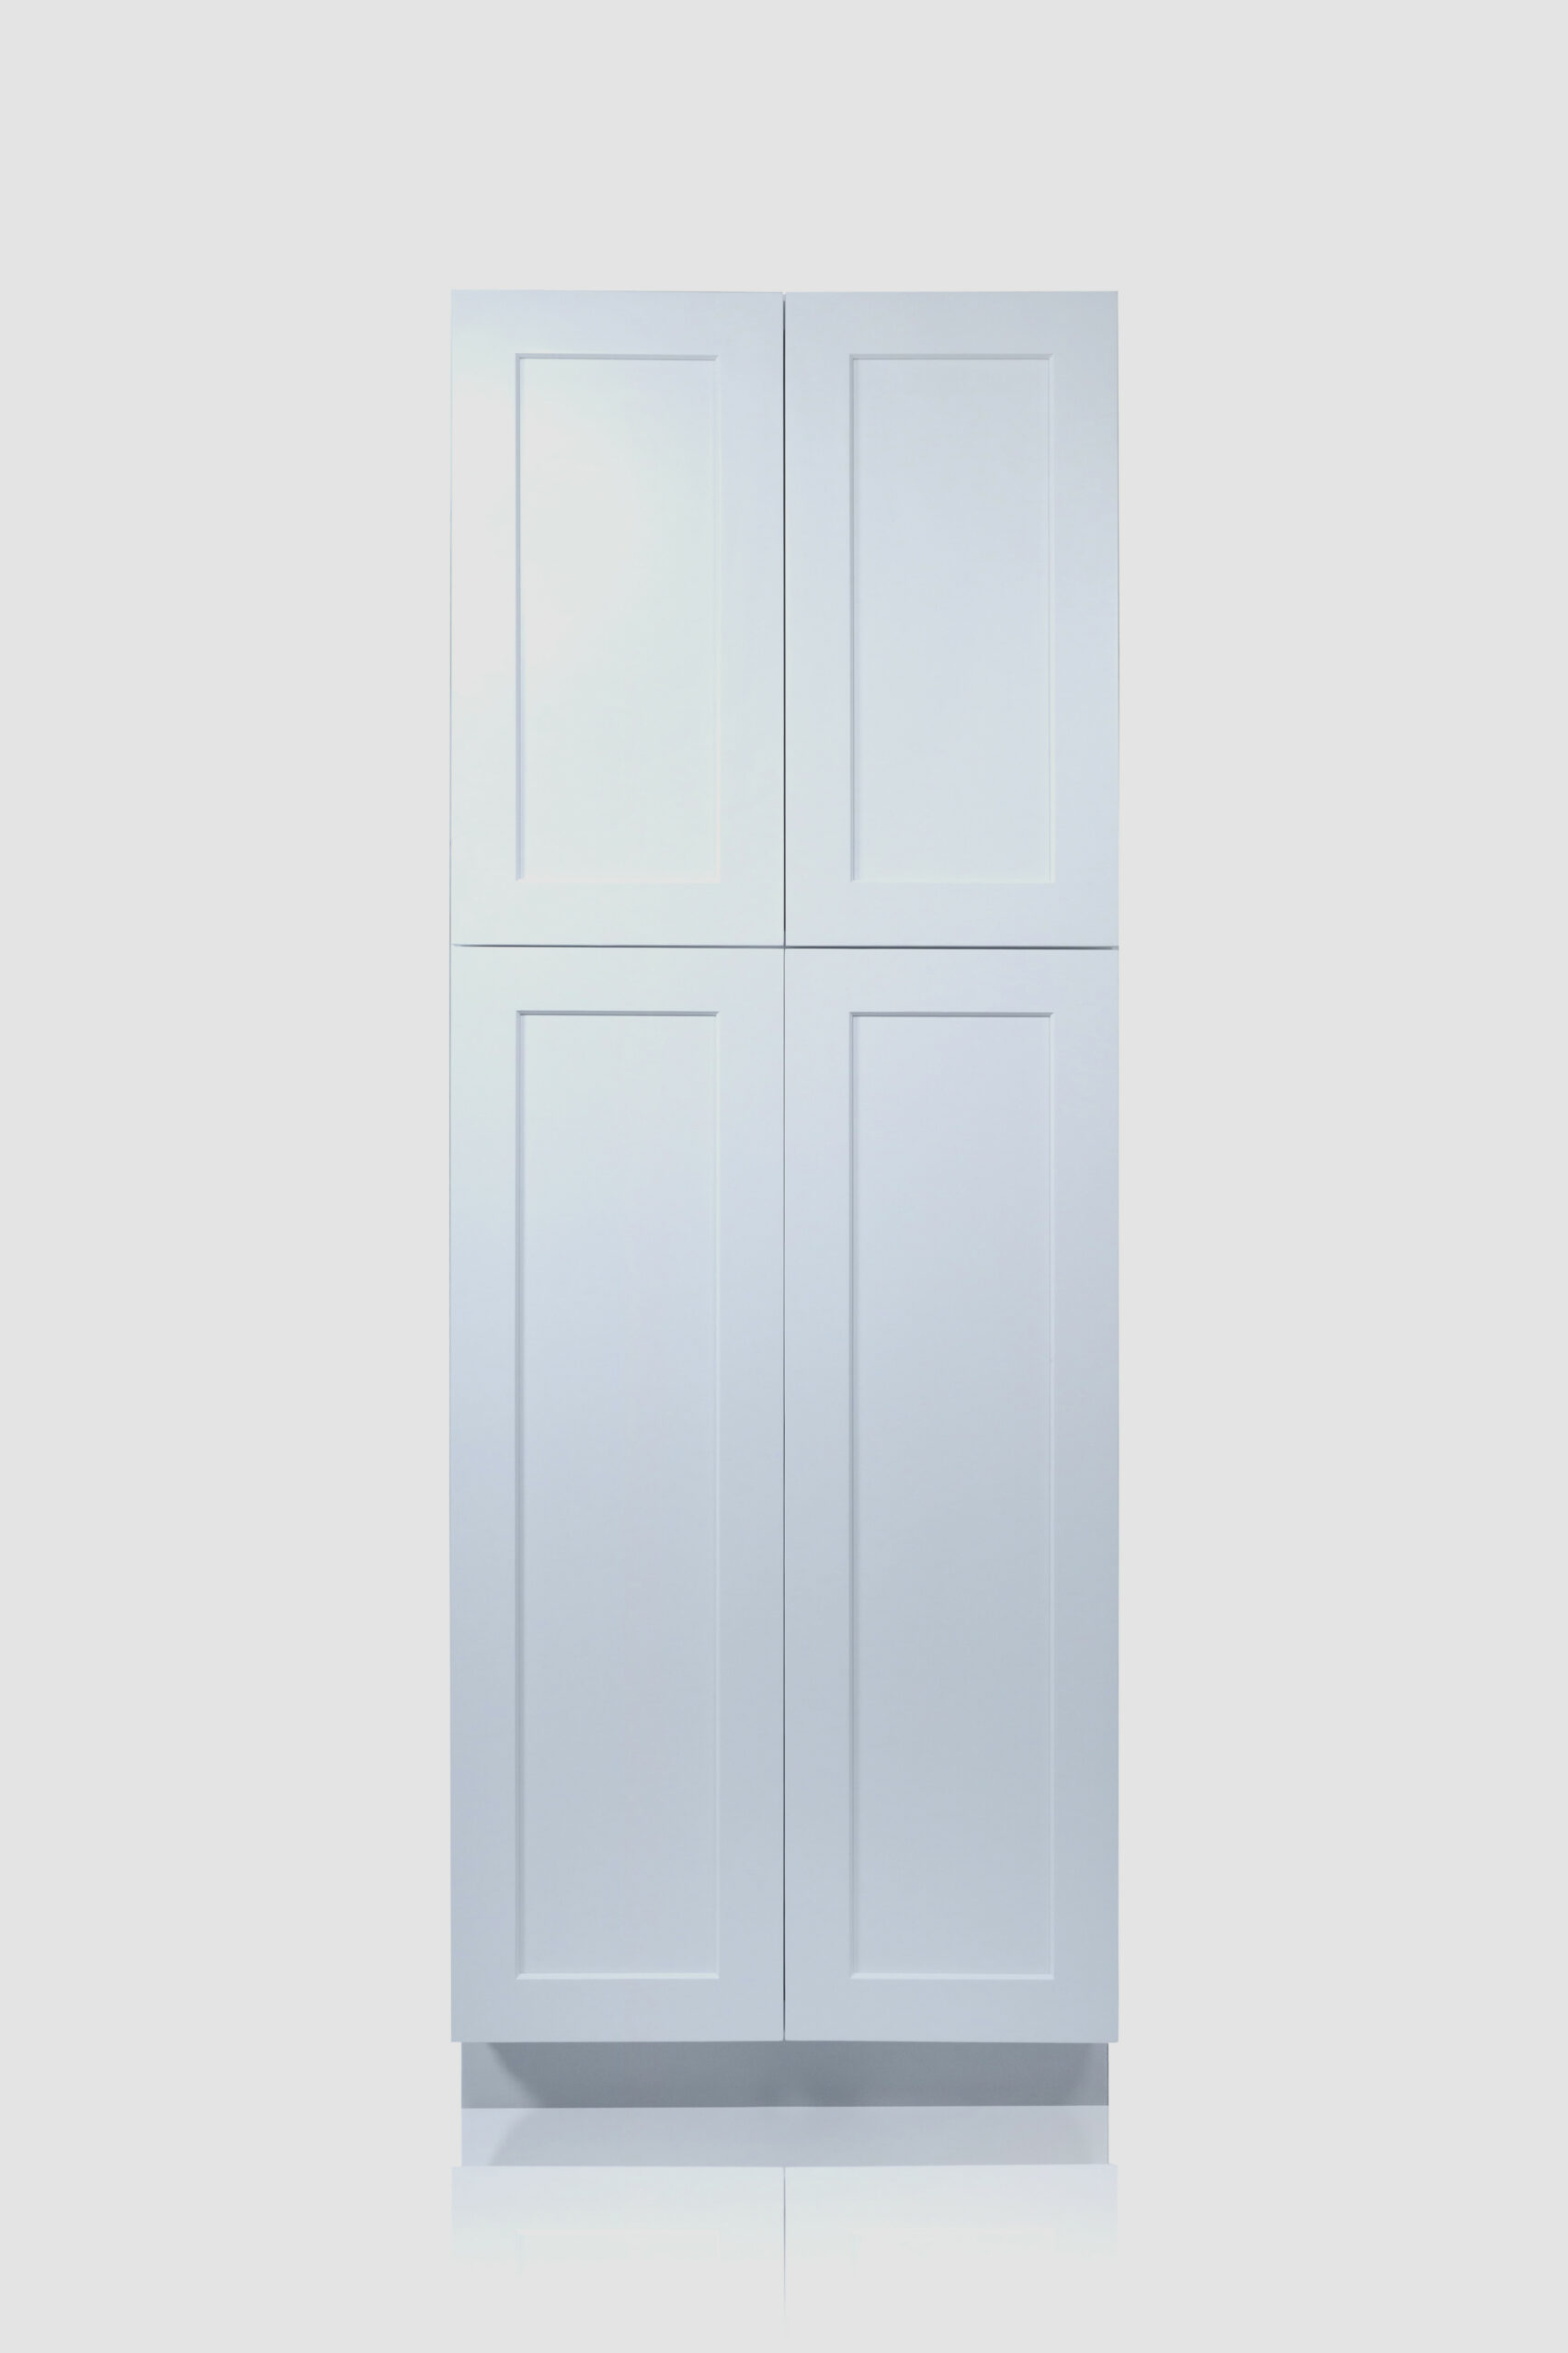 1 Inch Pantry Cabinet